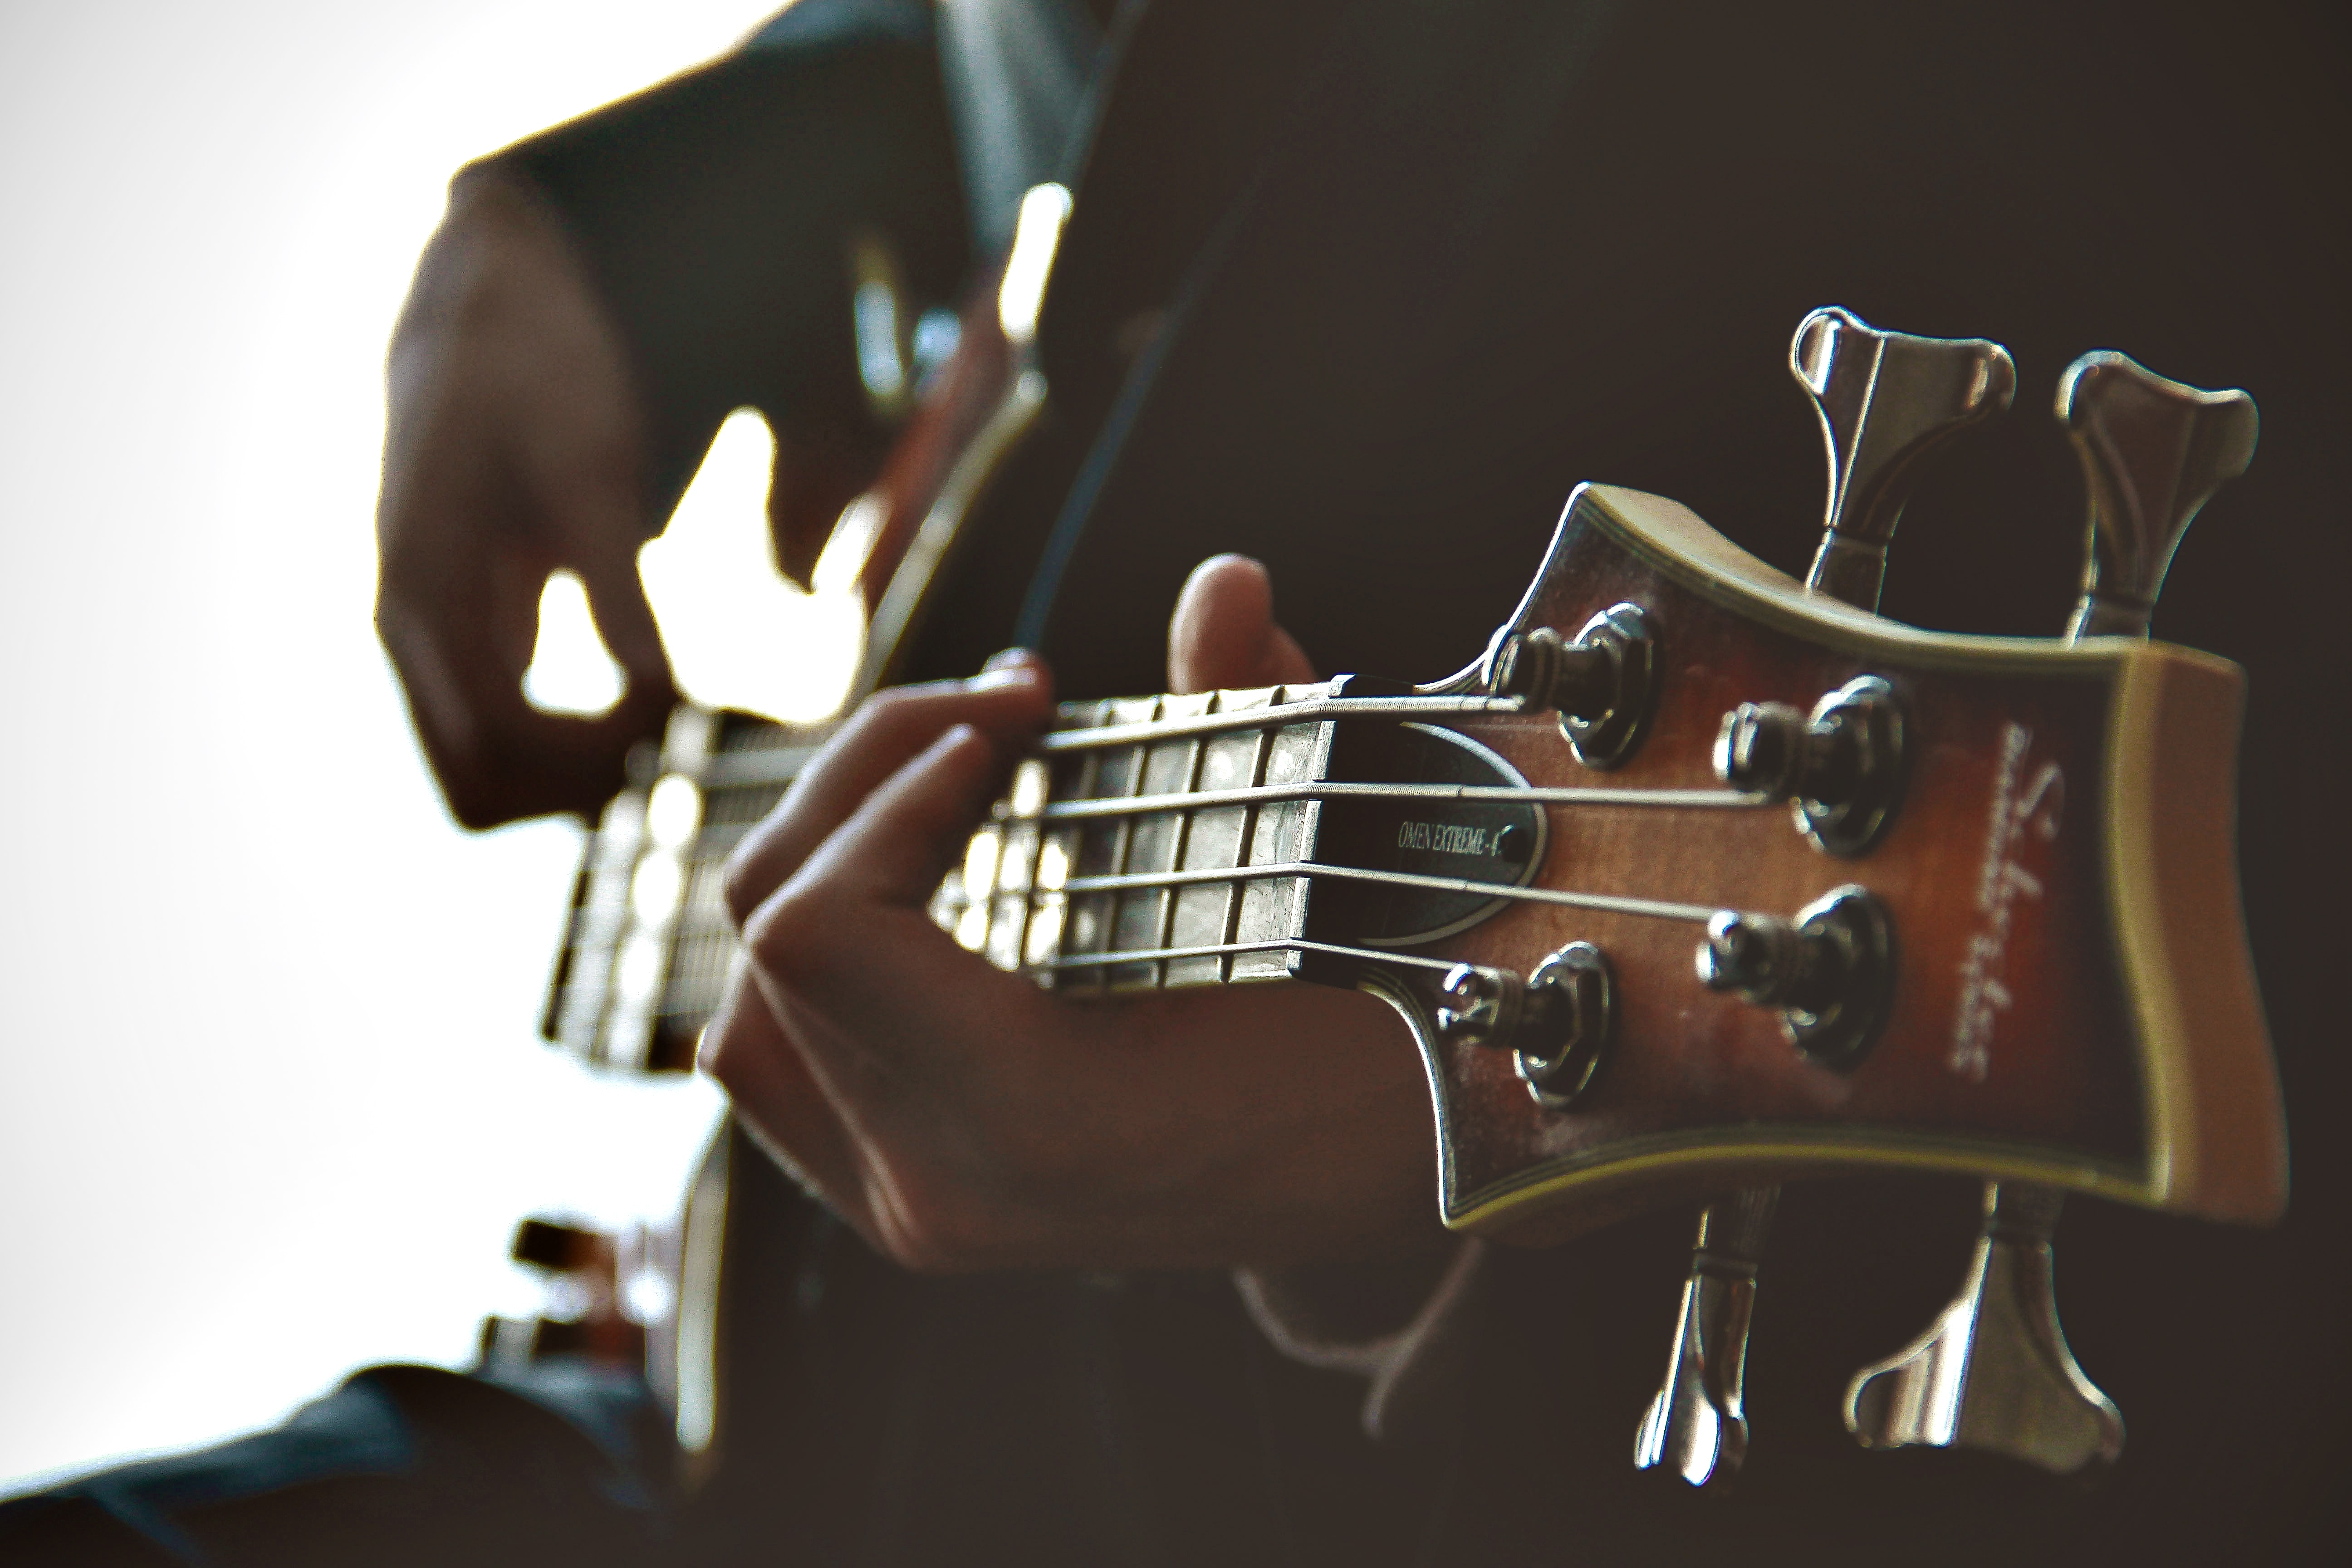 A close-up of a person's hands strumming the guitar